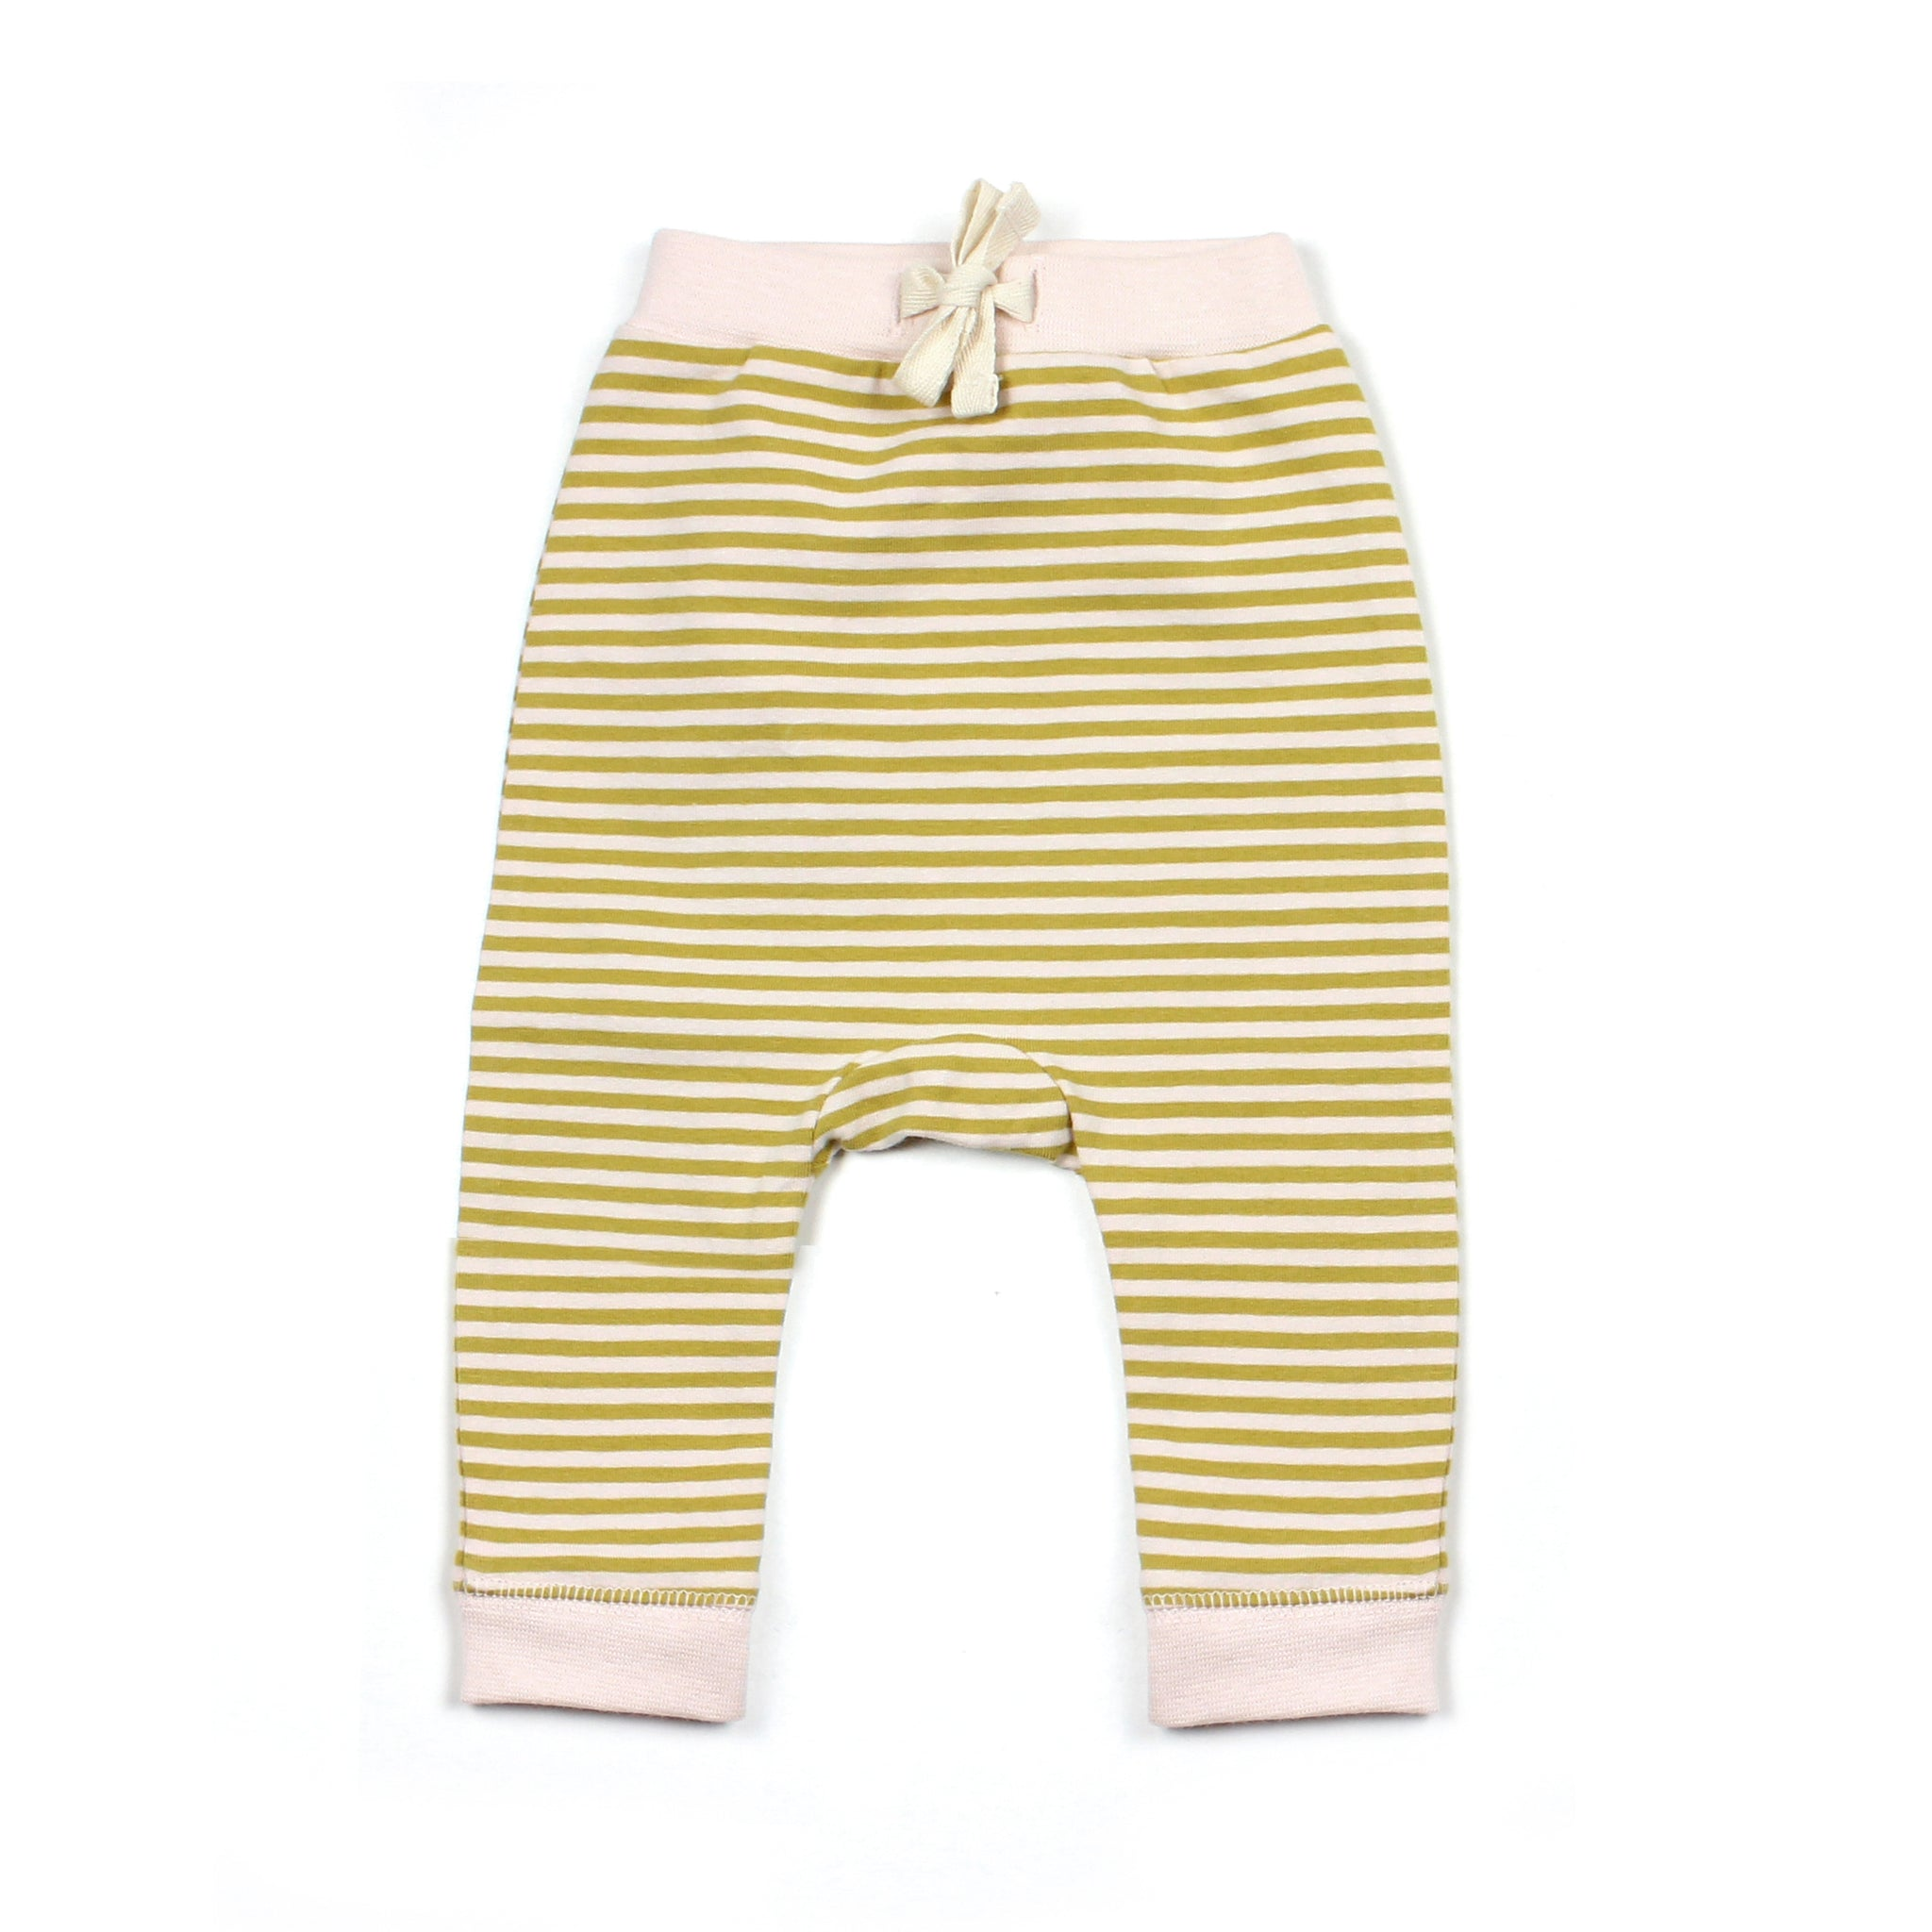 THE REST - Drawstring Pant | Mustard/Blush Stripe